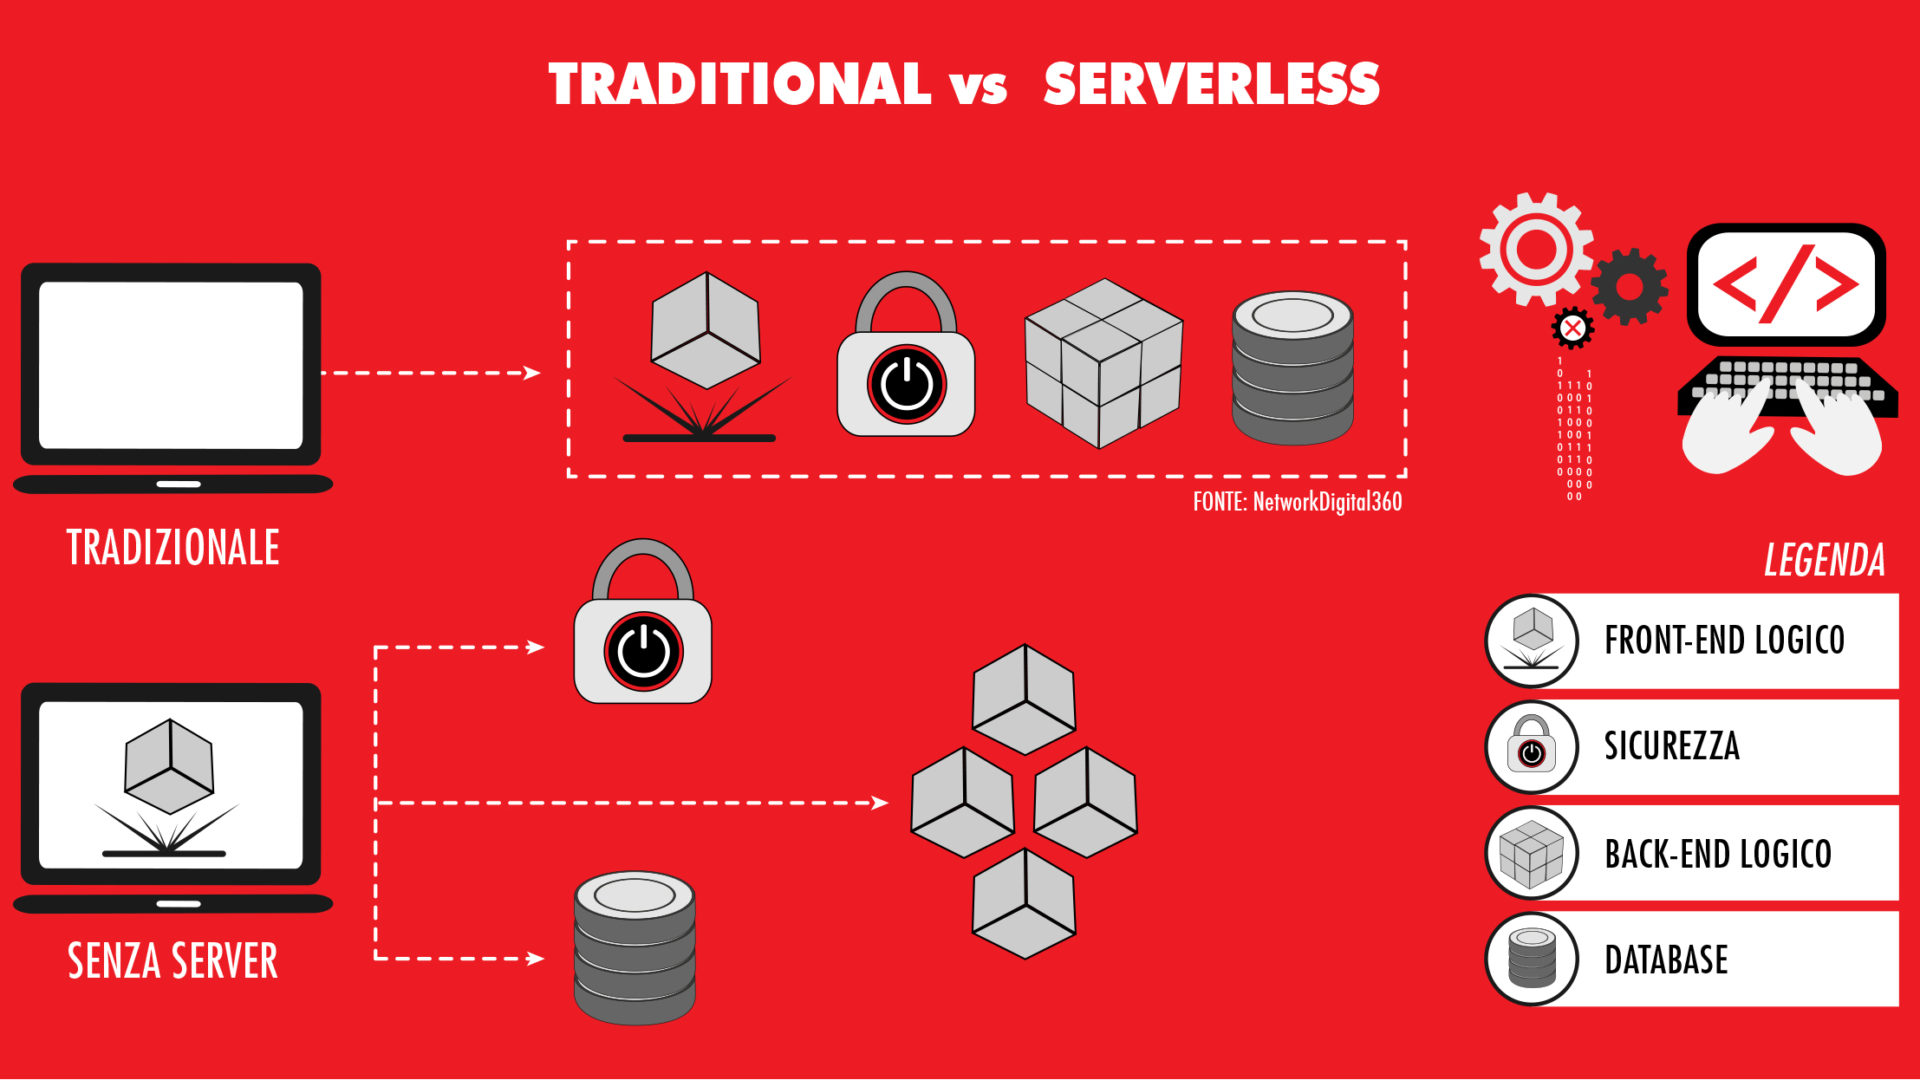 Serverless application vs tradizionale